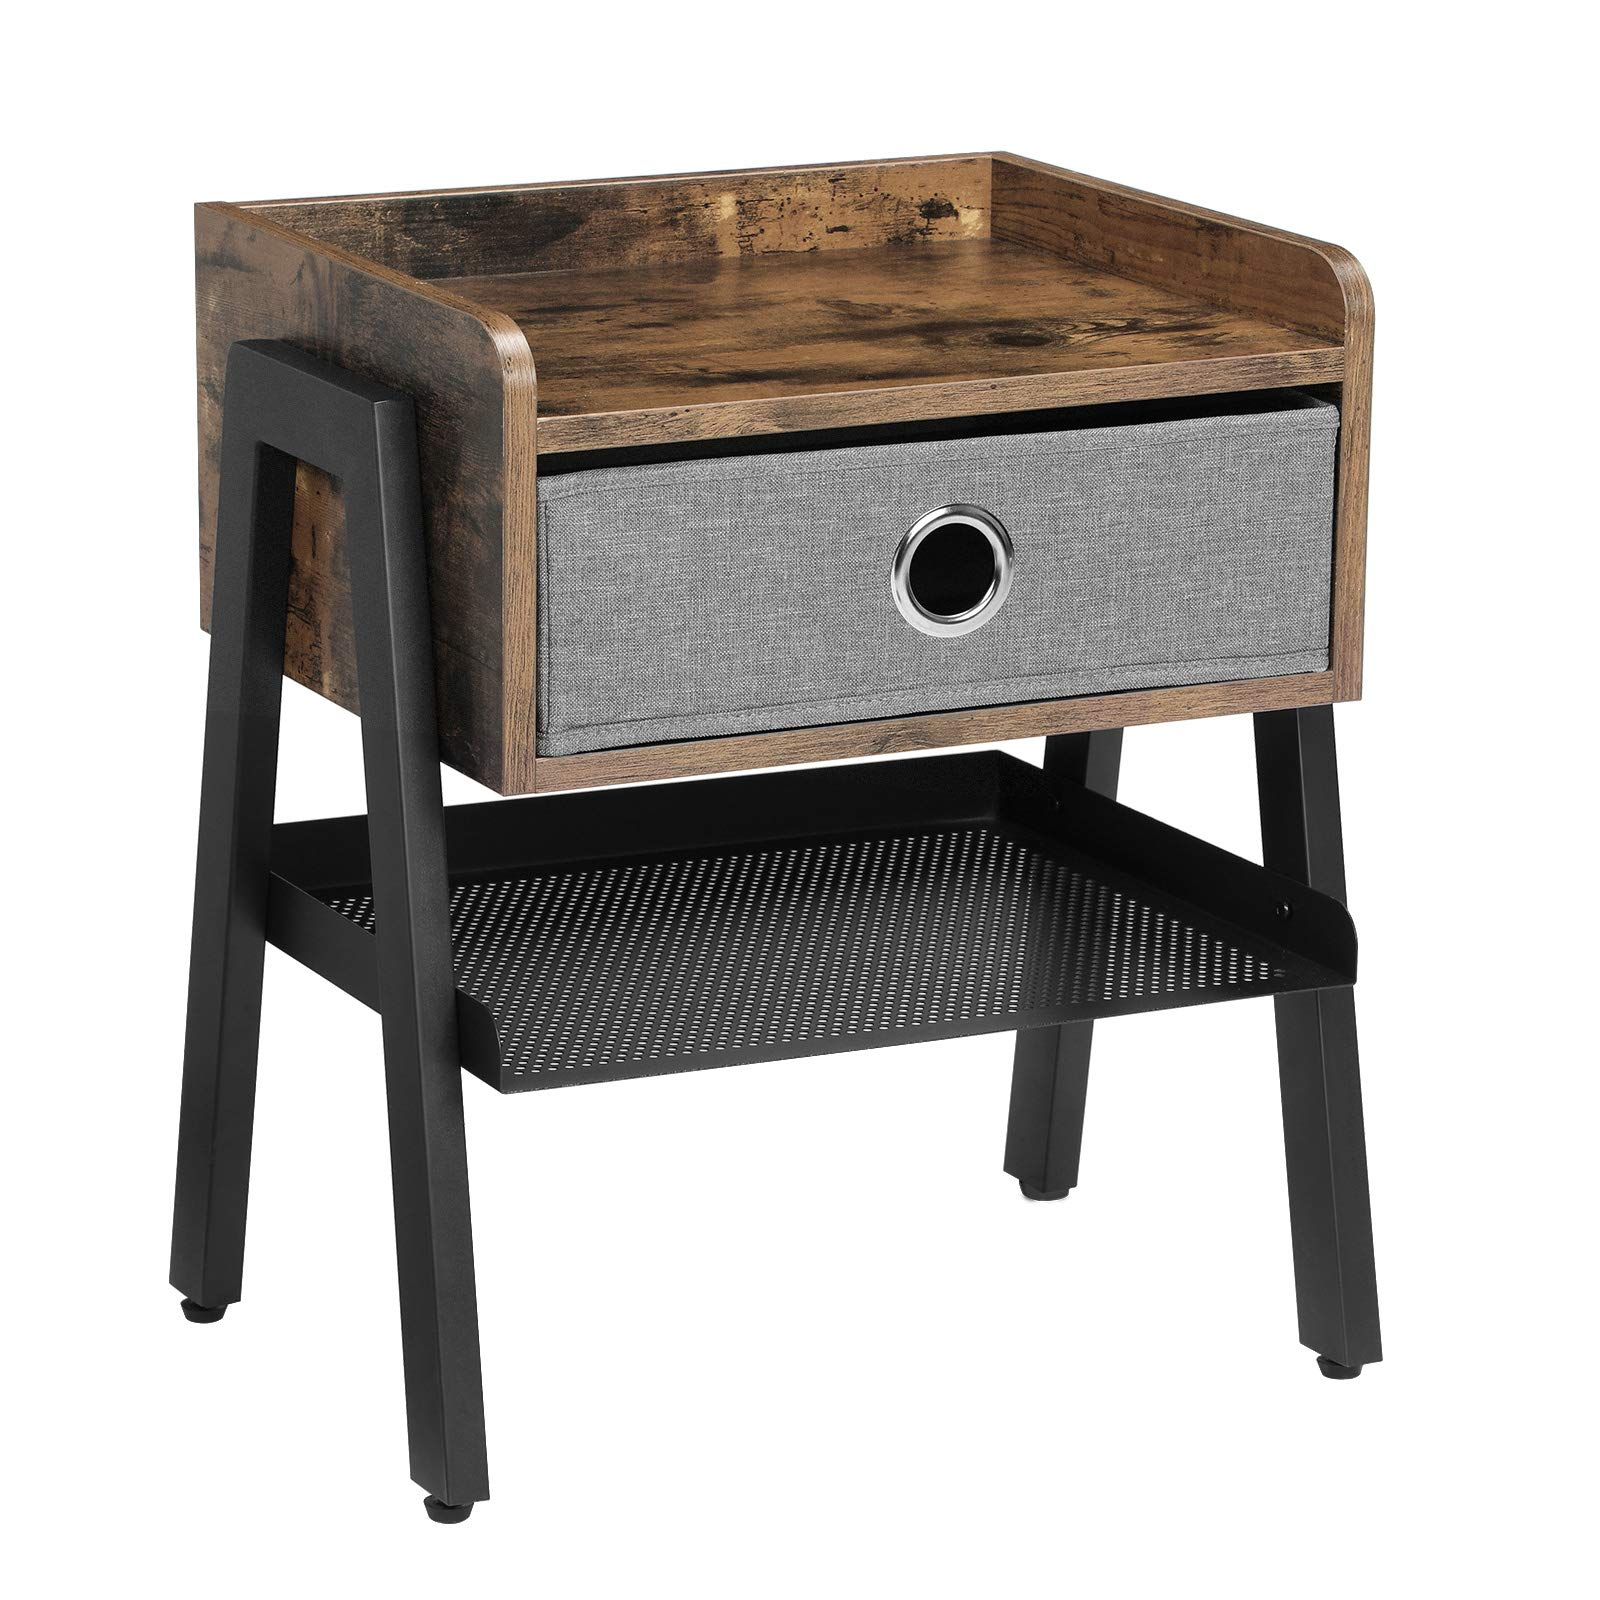 SONGMICS Vintage Nightstand, Side Table, End Table with Removable Fabric Drawer, for Small Spaces, Wood Look Accent Furniture with Metal Frame ULET64X